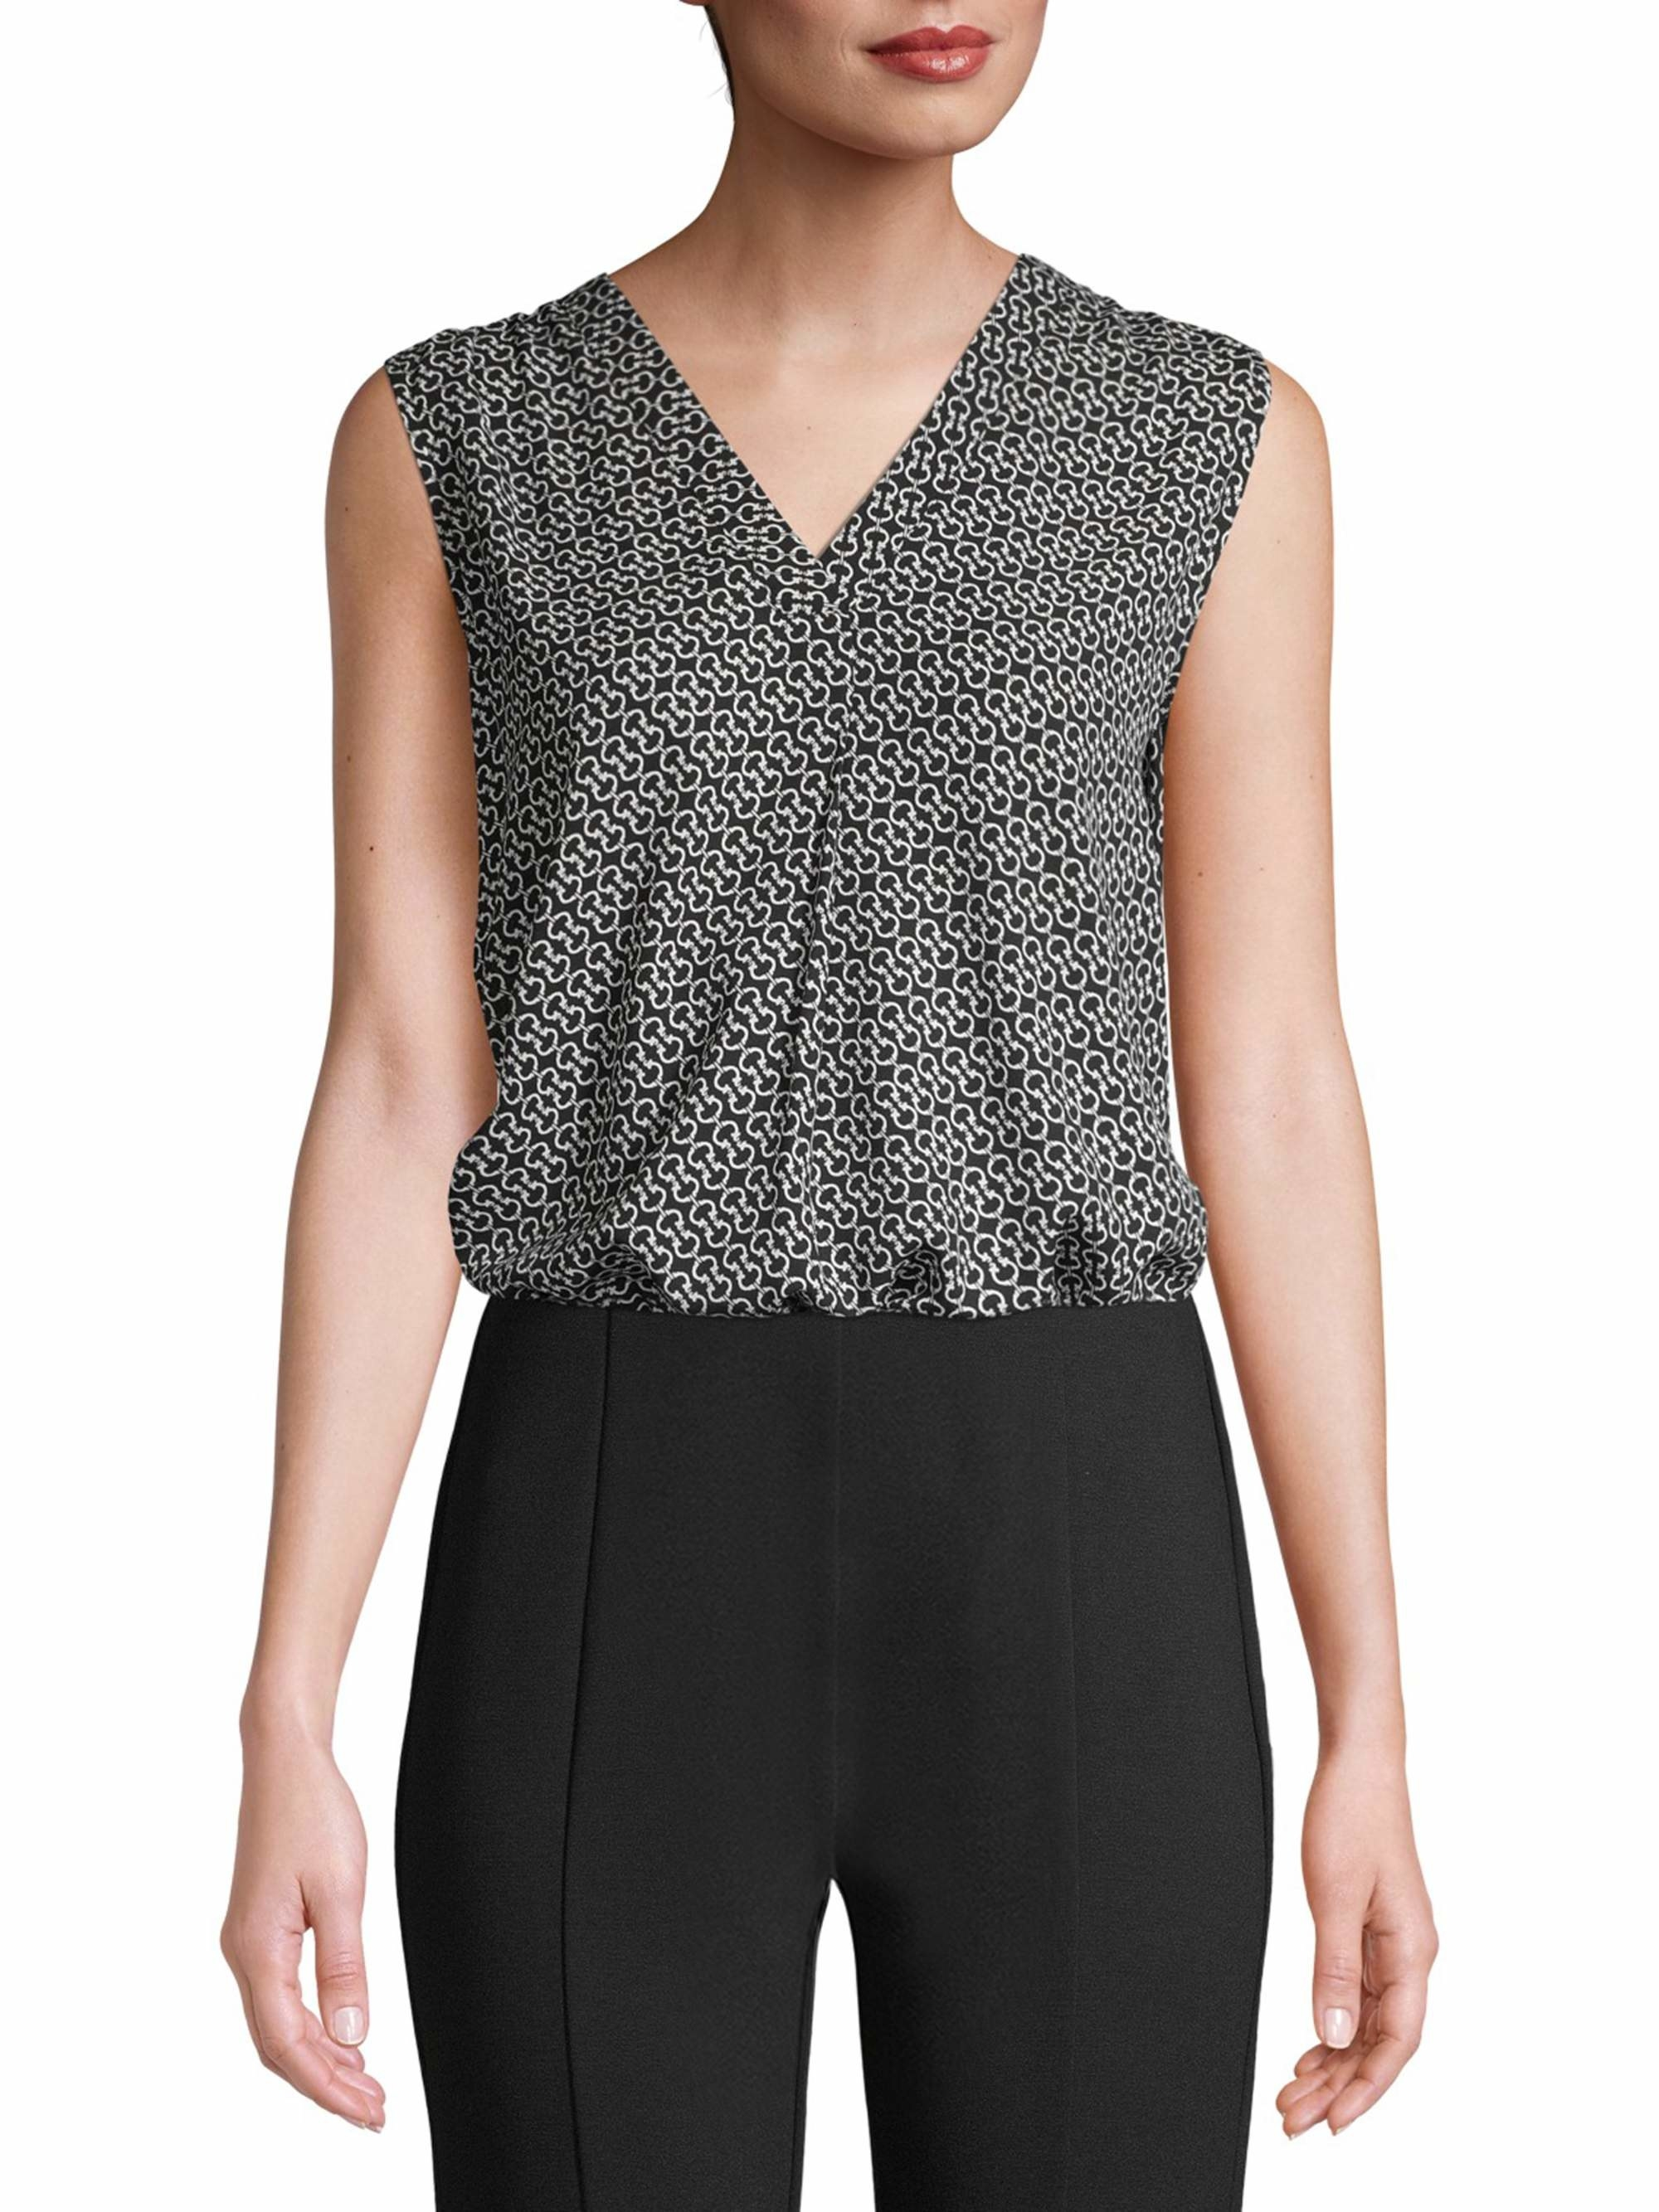 the sleeveless v-neck blouse with a black and white pattern on it